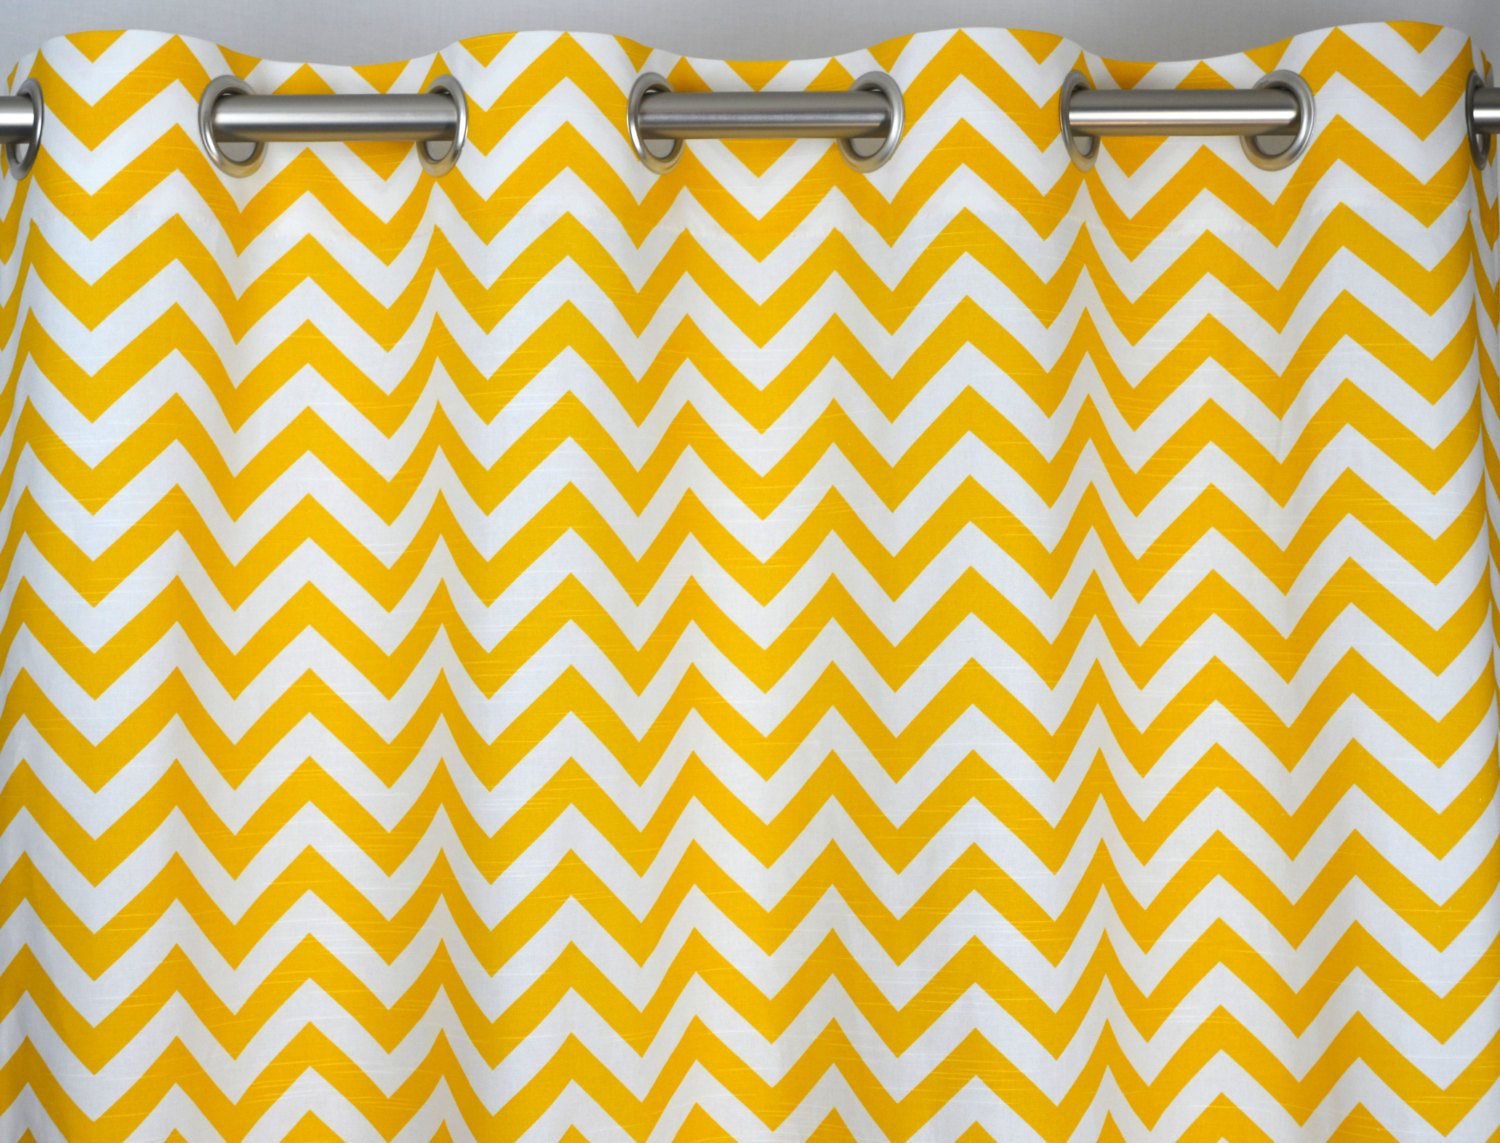 Yellow and grey chevron curtains - Yellow And White Chevron Zig Zag Drape With Blackout Lining One Grommet Top Curtain Panel 84 Inches Long X 50 Inches Wide Amazon Co Uk Kitchen Home